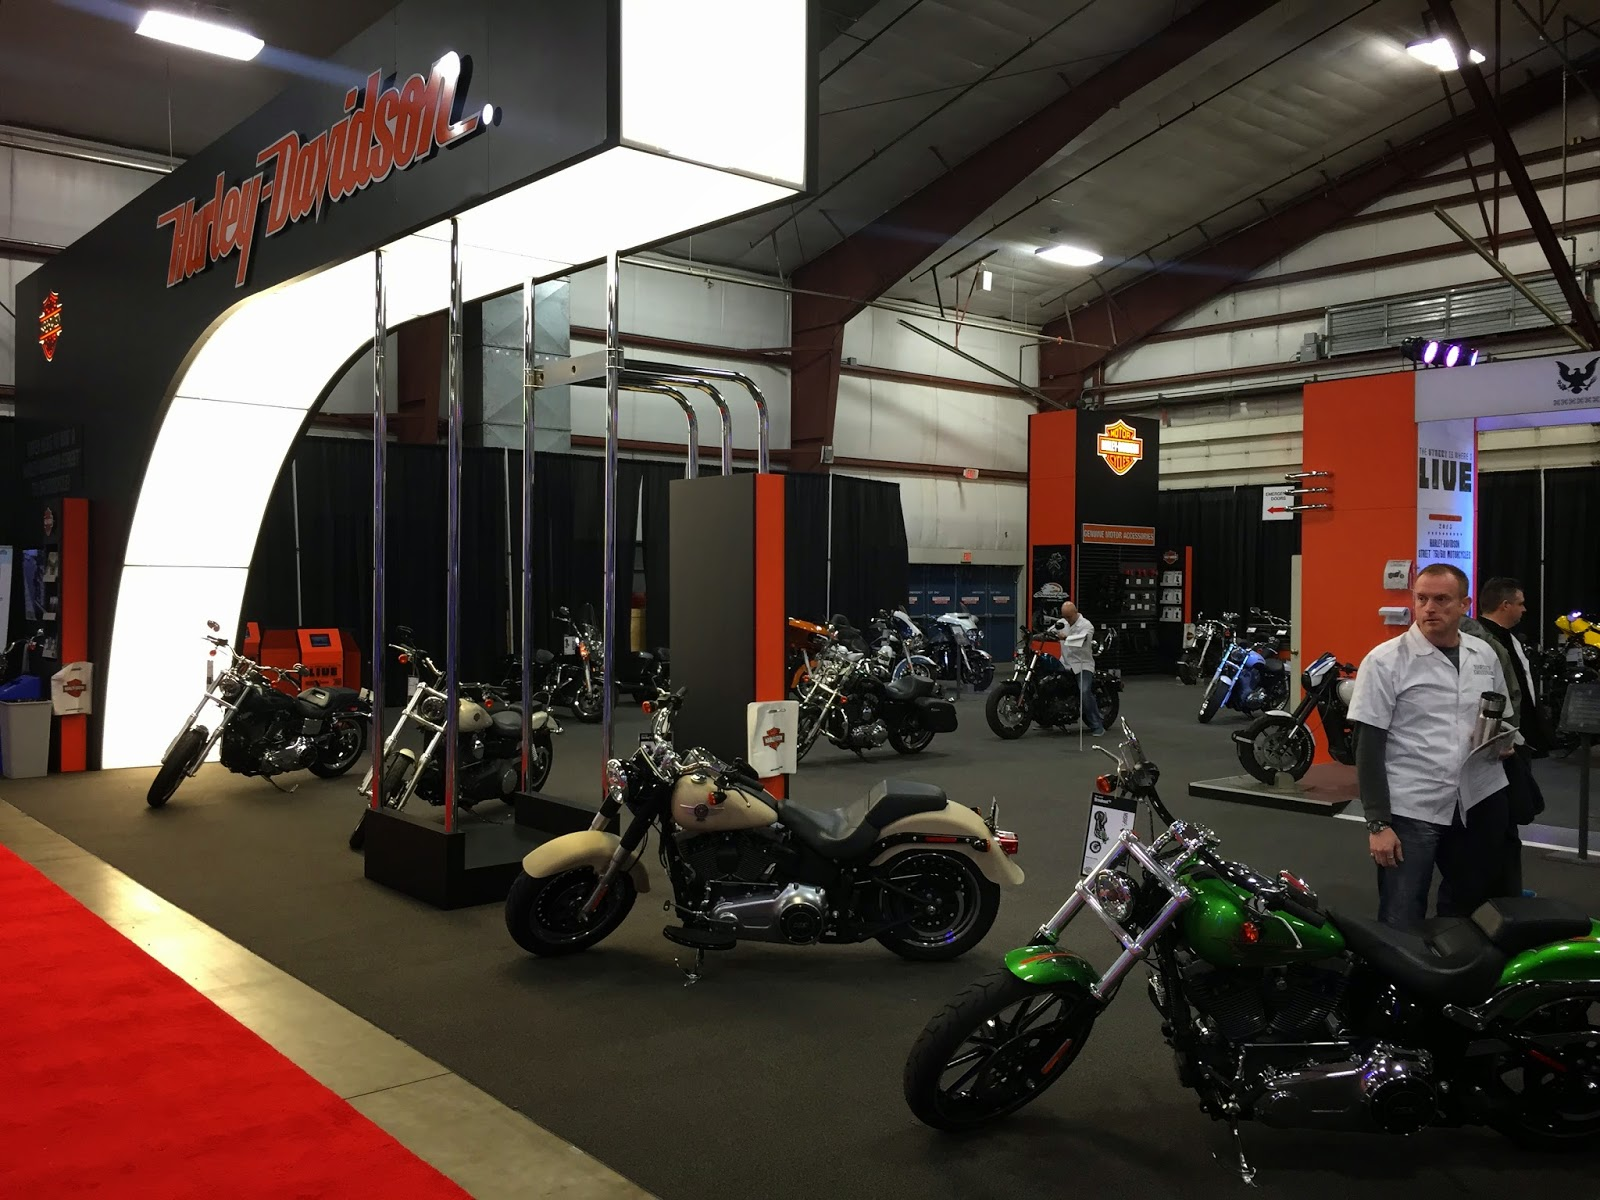 Barnesified: 2015 Vancouver Motorcycle Show Harley Davidson Booth